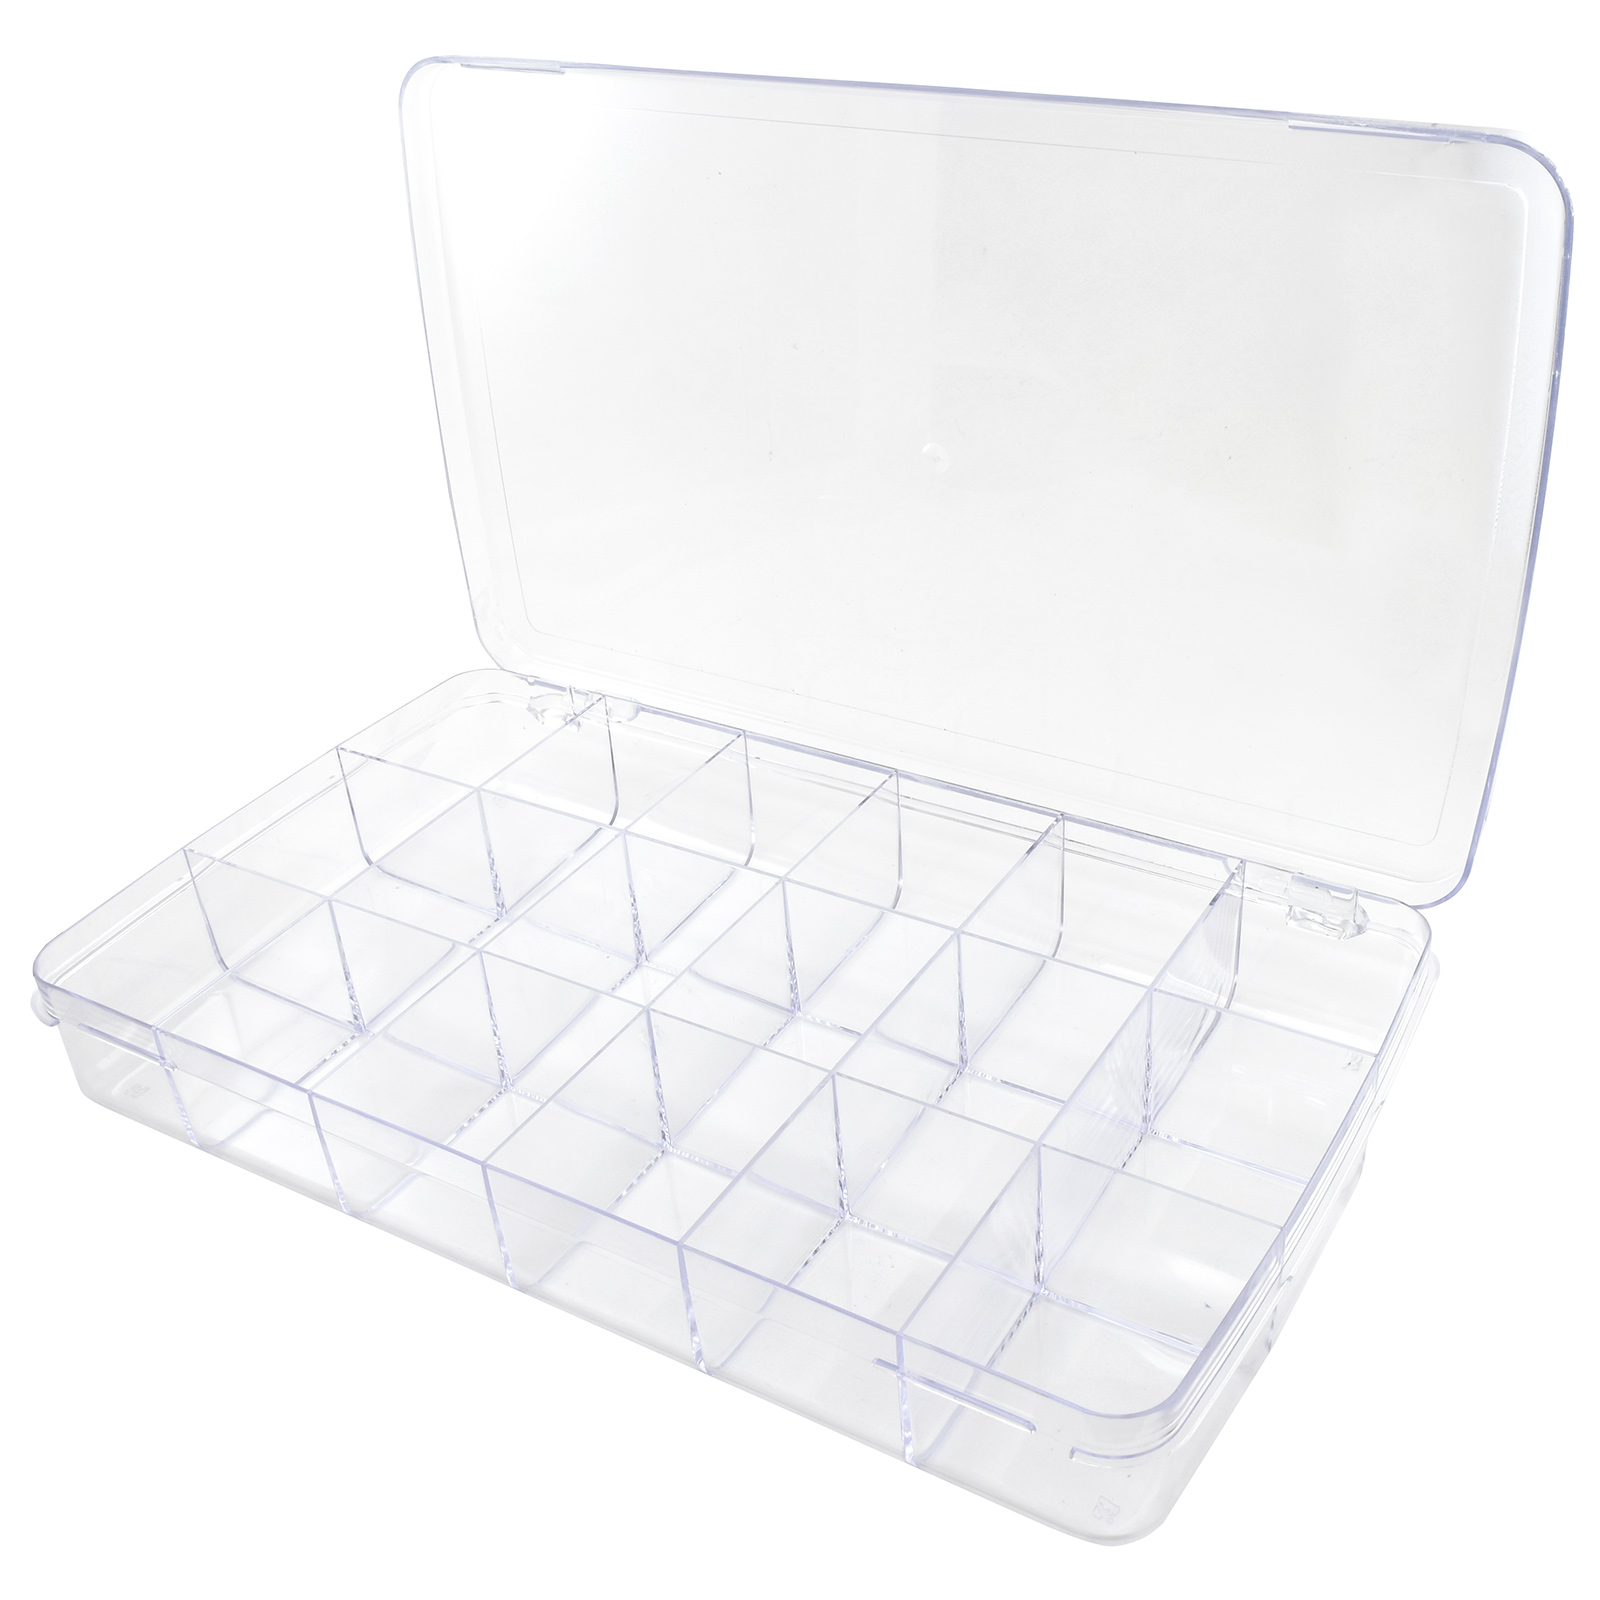 24 Compartment Plastic Storage Box